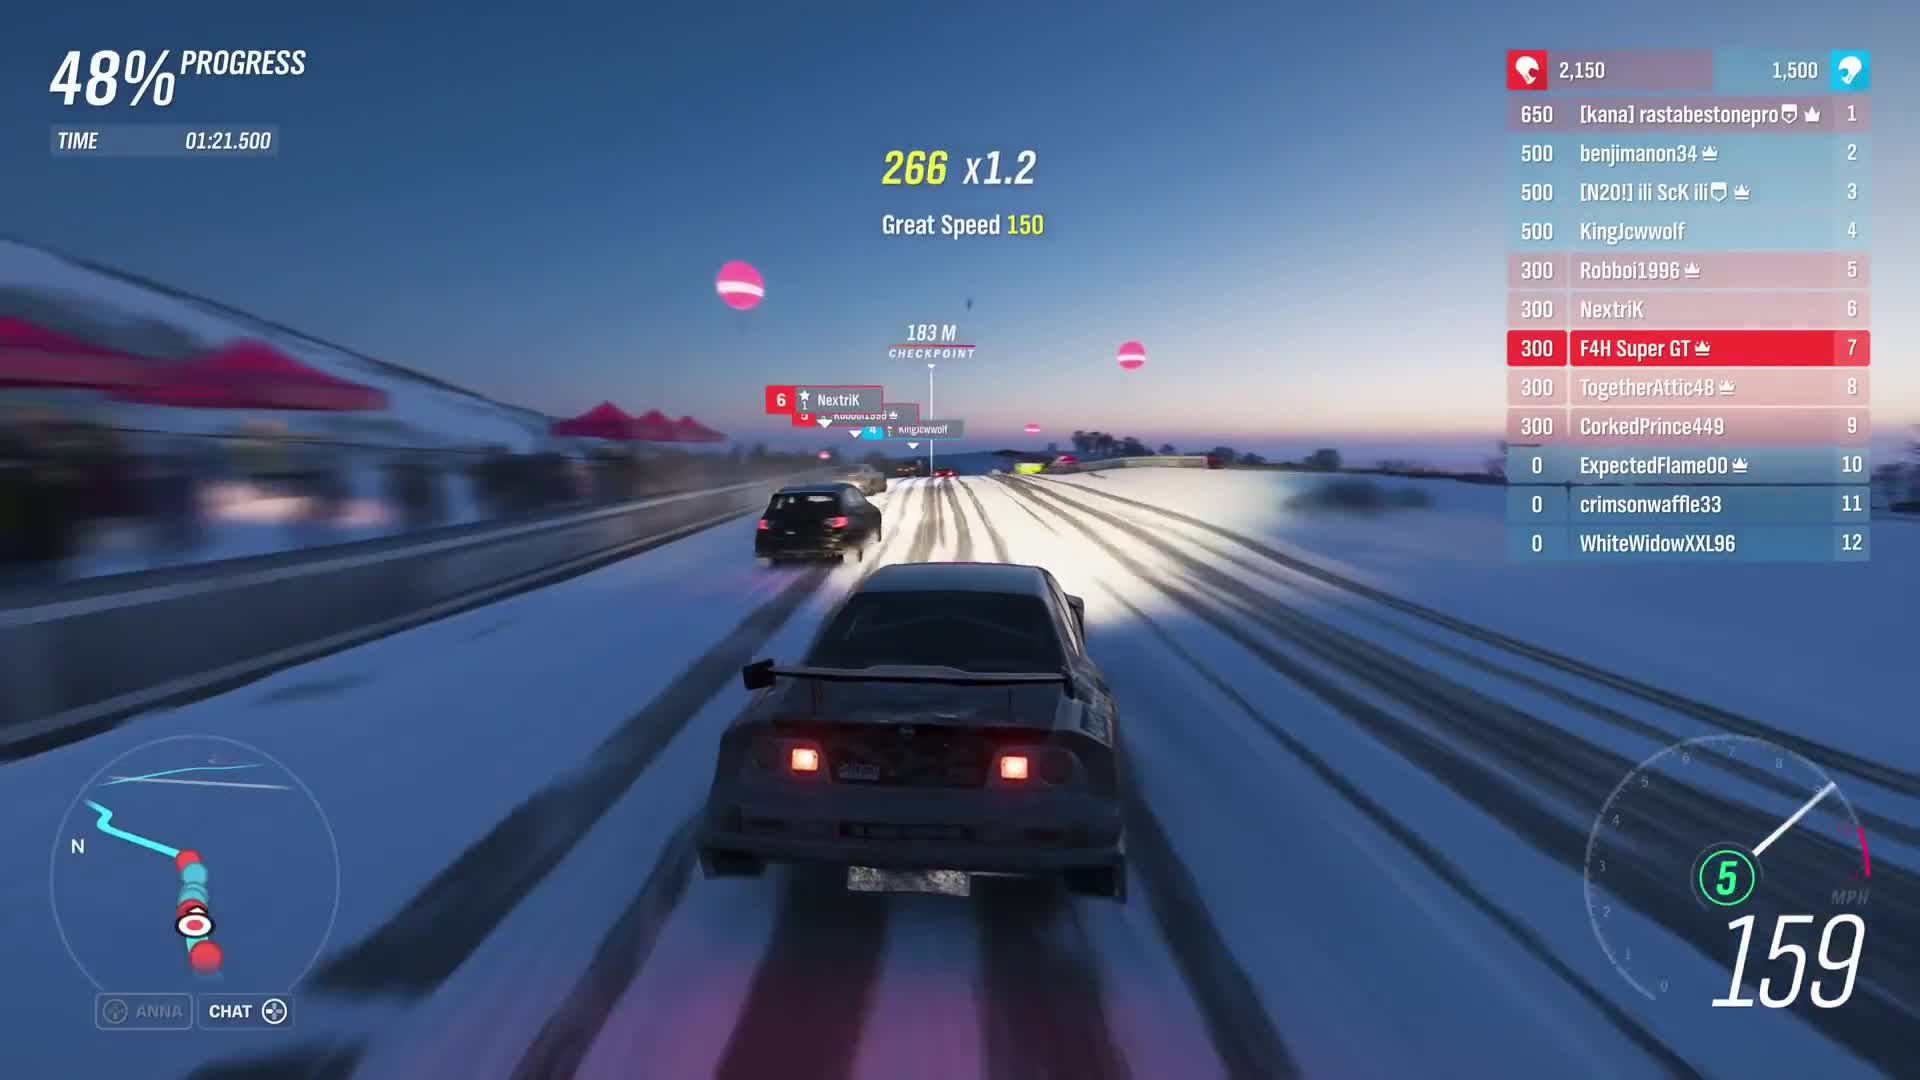 Forza, forza horizon 4, forza horizon 4 best car, forza horizon 4 drift, forza horizon 4 gameplay, forza horizon 4 multiplayer, forza horizon 4 online, forza horizon 4 review, forza horizon 4 tuning, forza horizon 4 xbox one x, Forza Horizon 4: Where Wall Riding is King GIFs